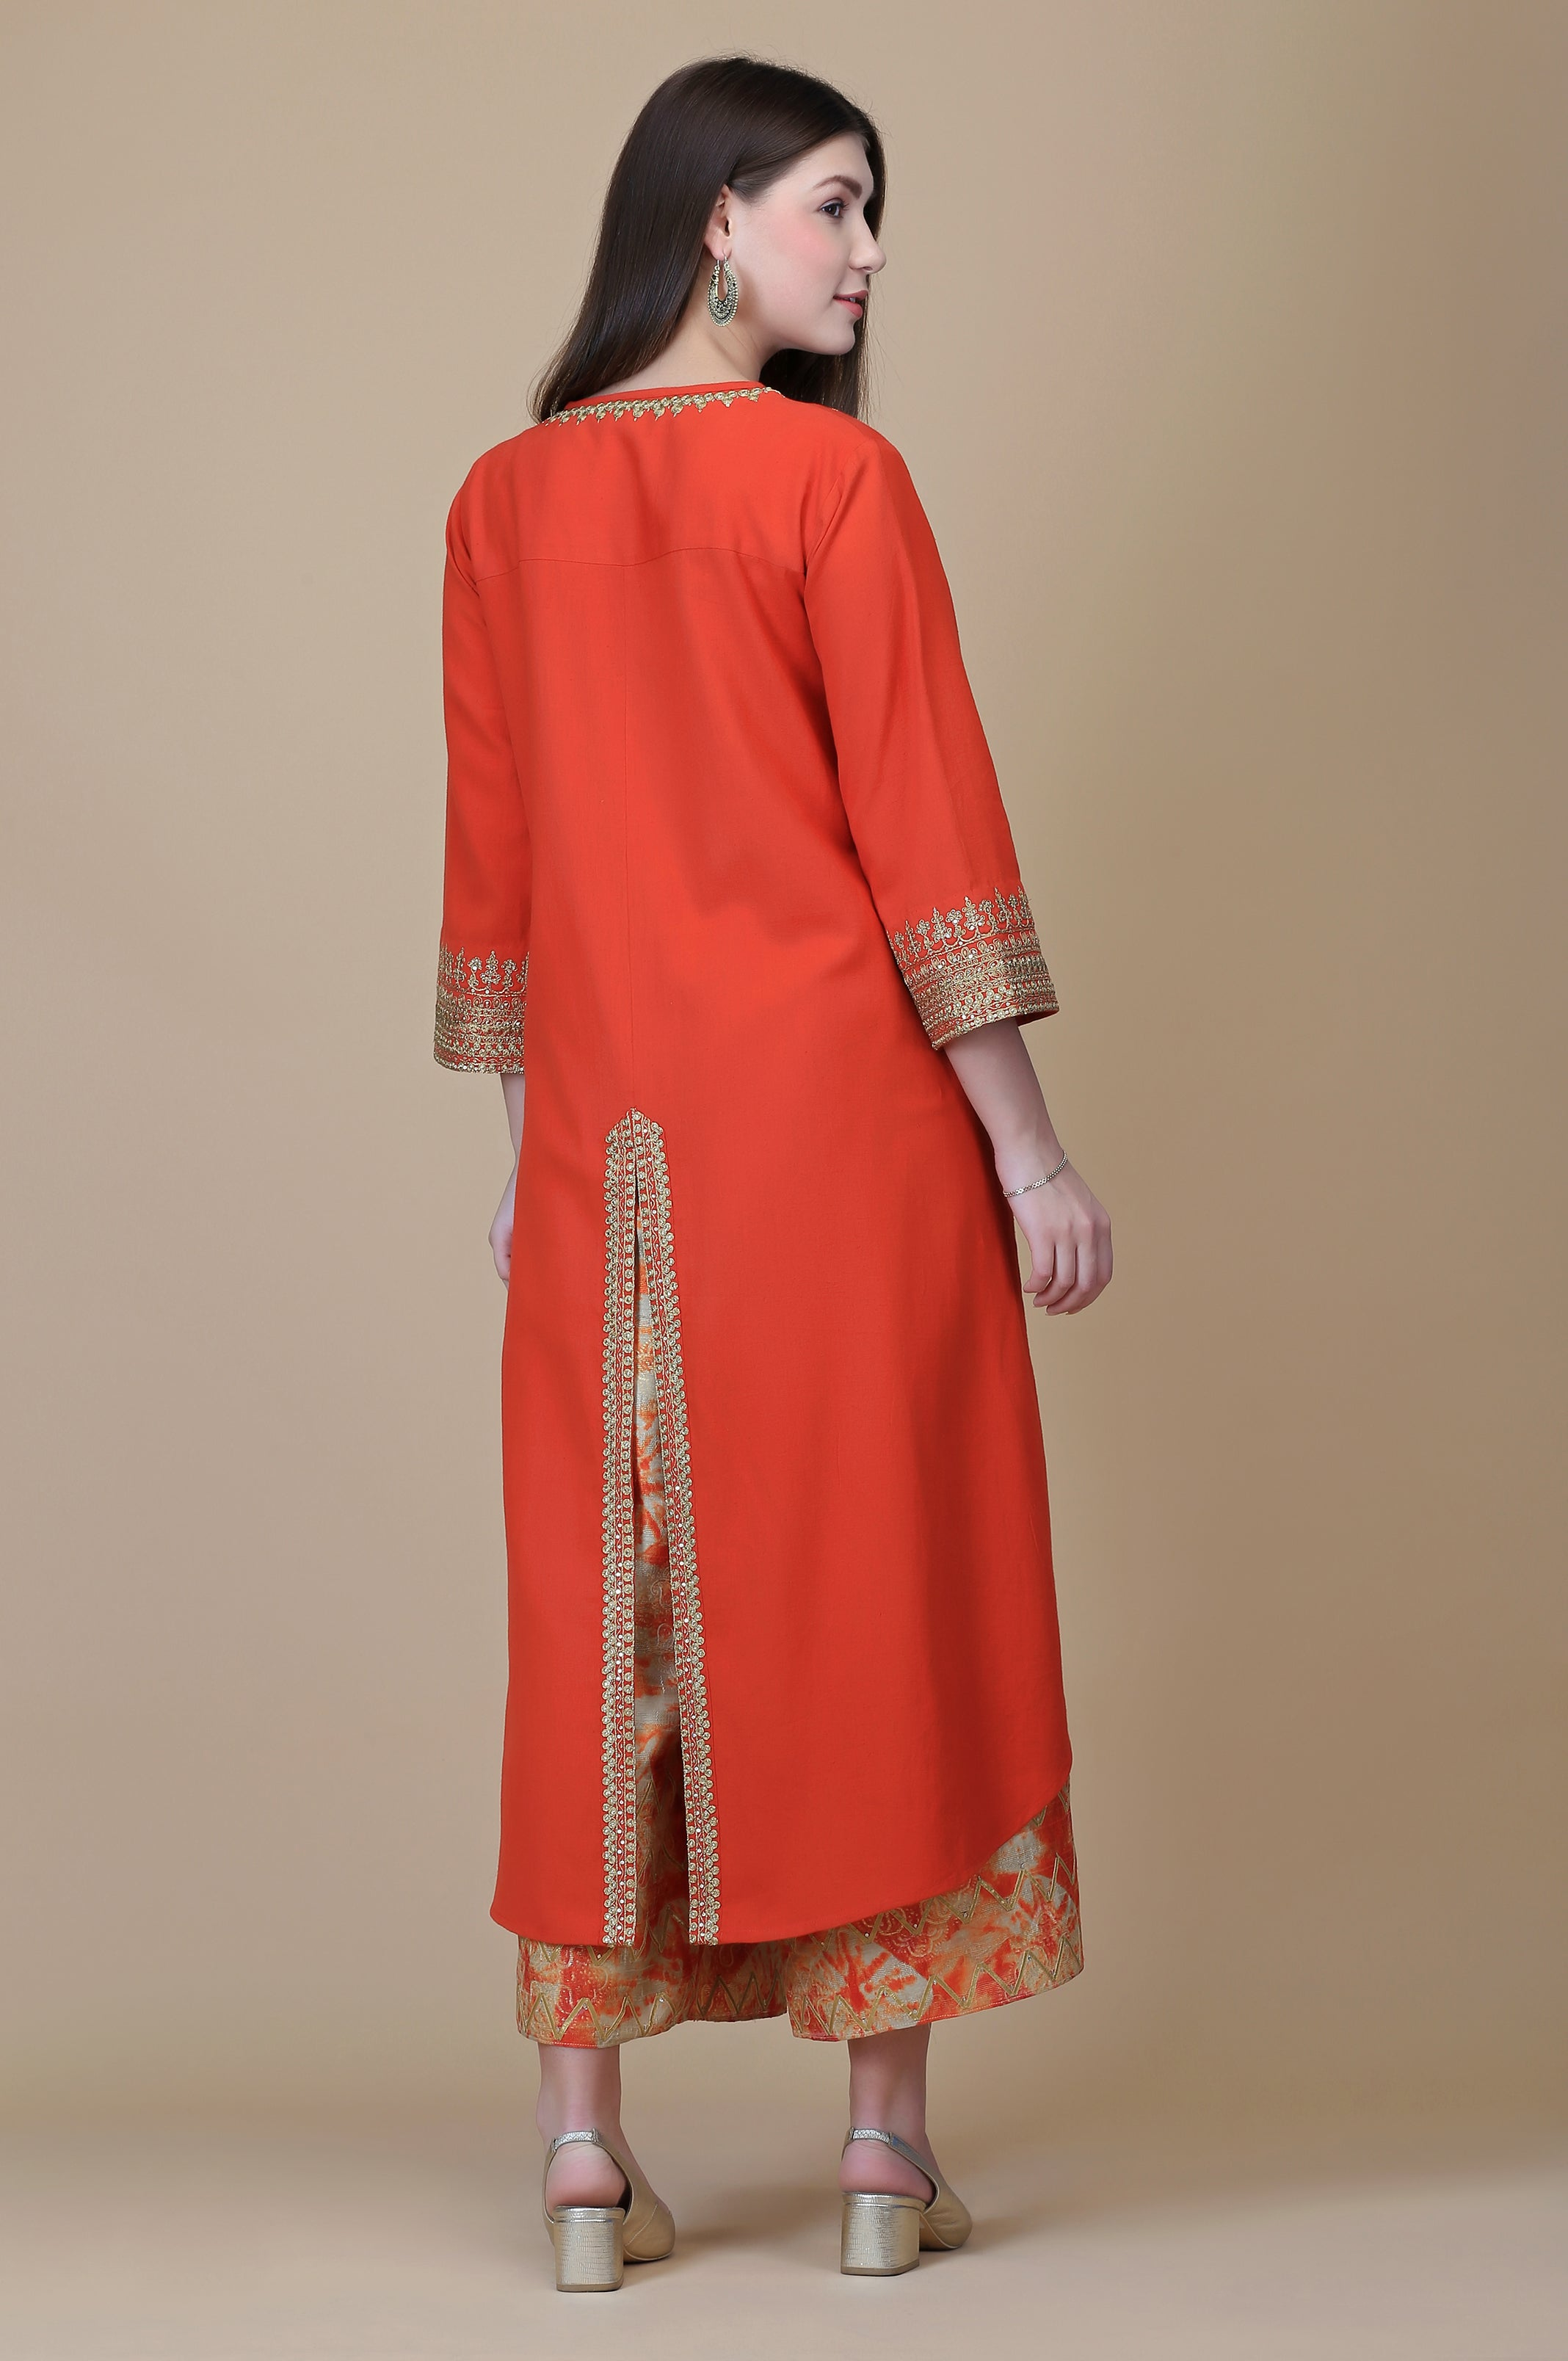 BURNT ORANGE LINEN TUNIC WITH DISCHARGE FARSHI